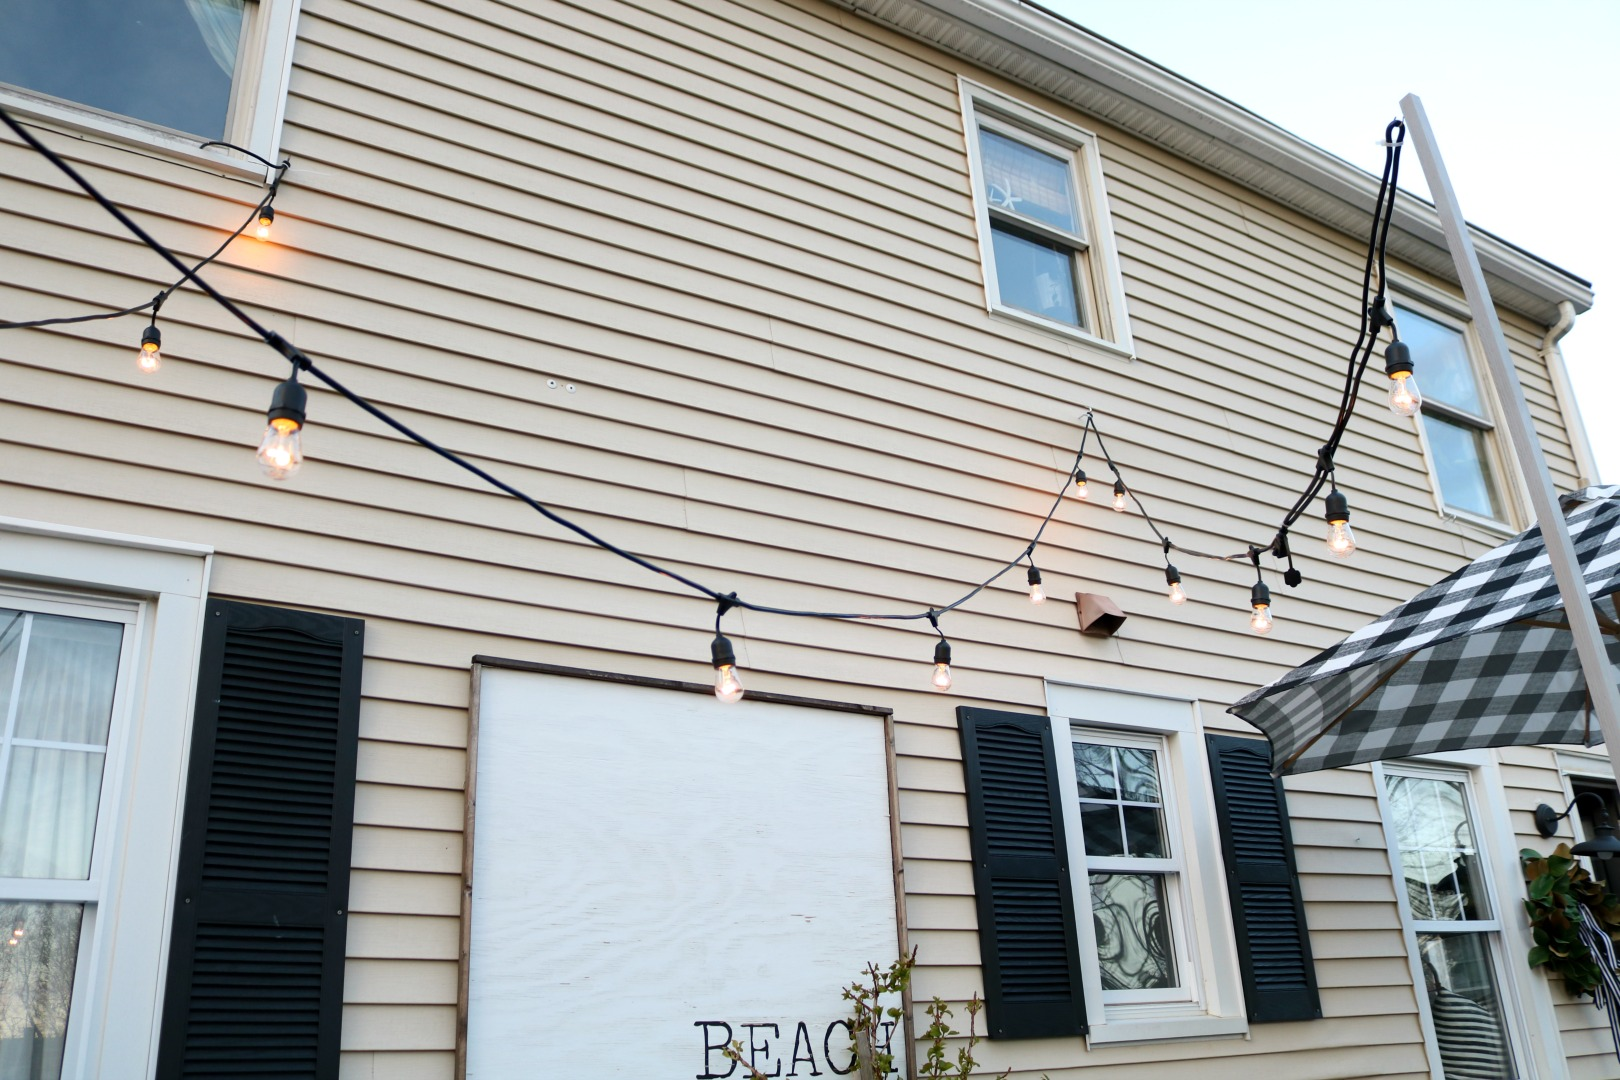 How to hang Outdoor Patio Lights and Privacy Screen